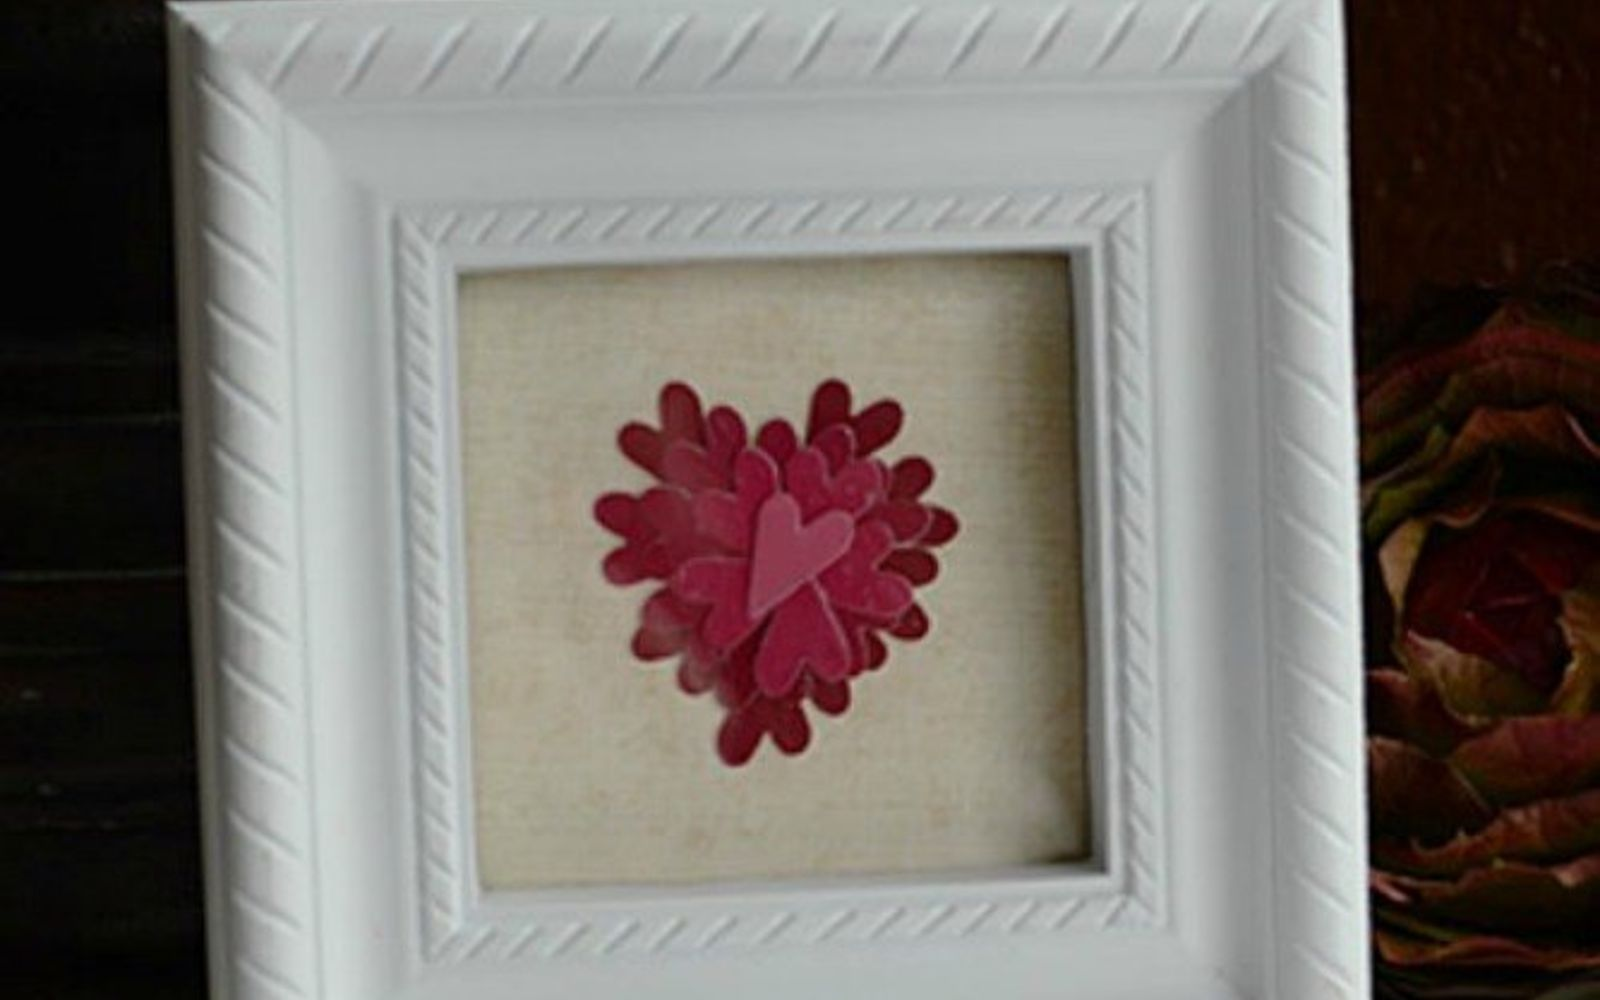 s 20 heartfelt valentine s day gifts for under 20, seasonal holiday decor, valentines day ideas, Cut out paint chips and frame them